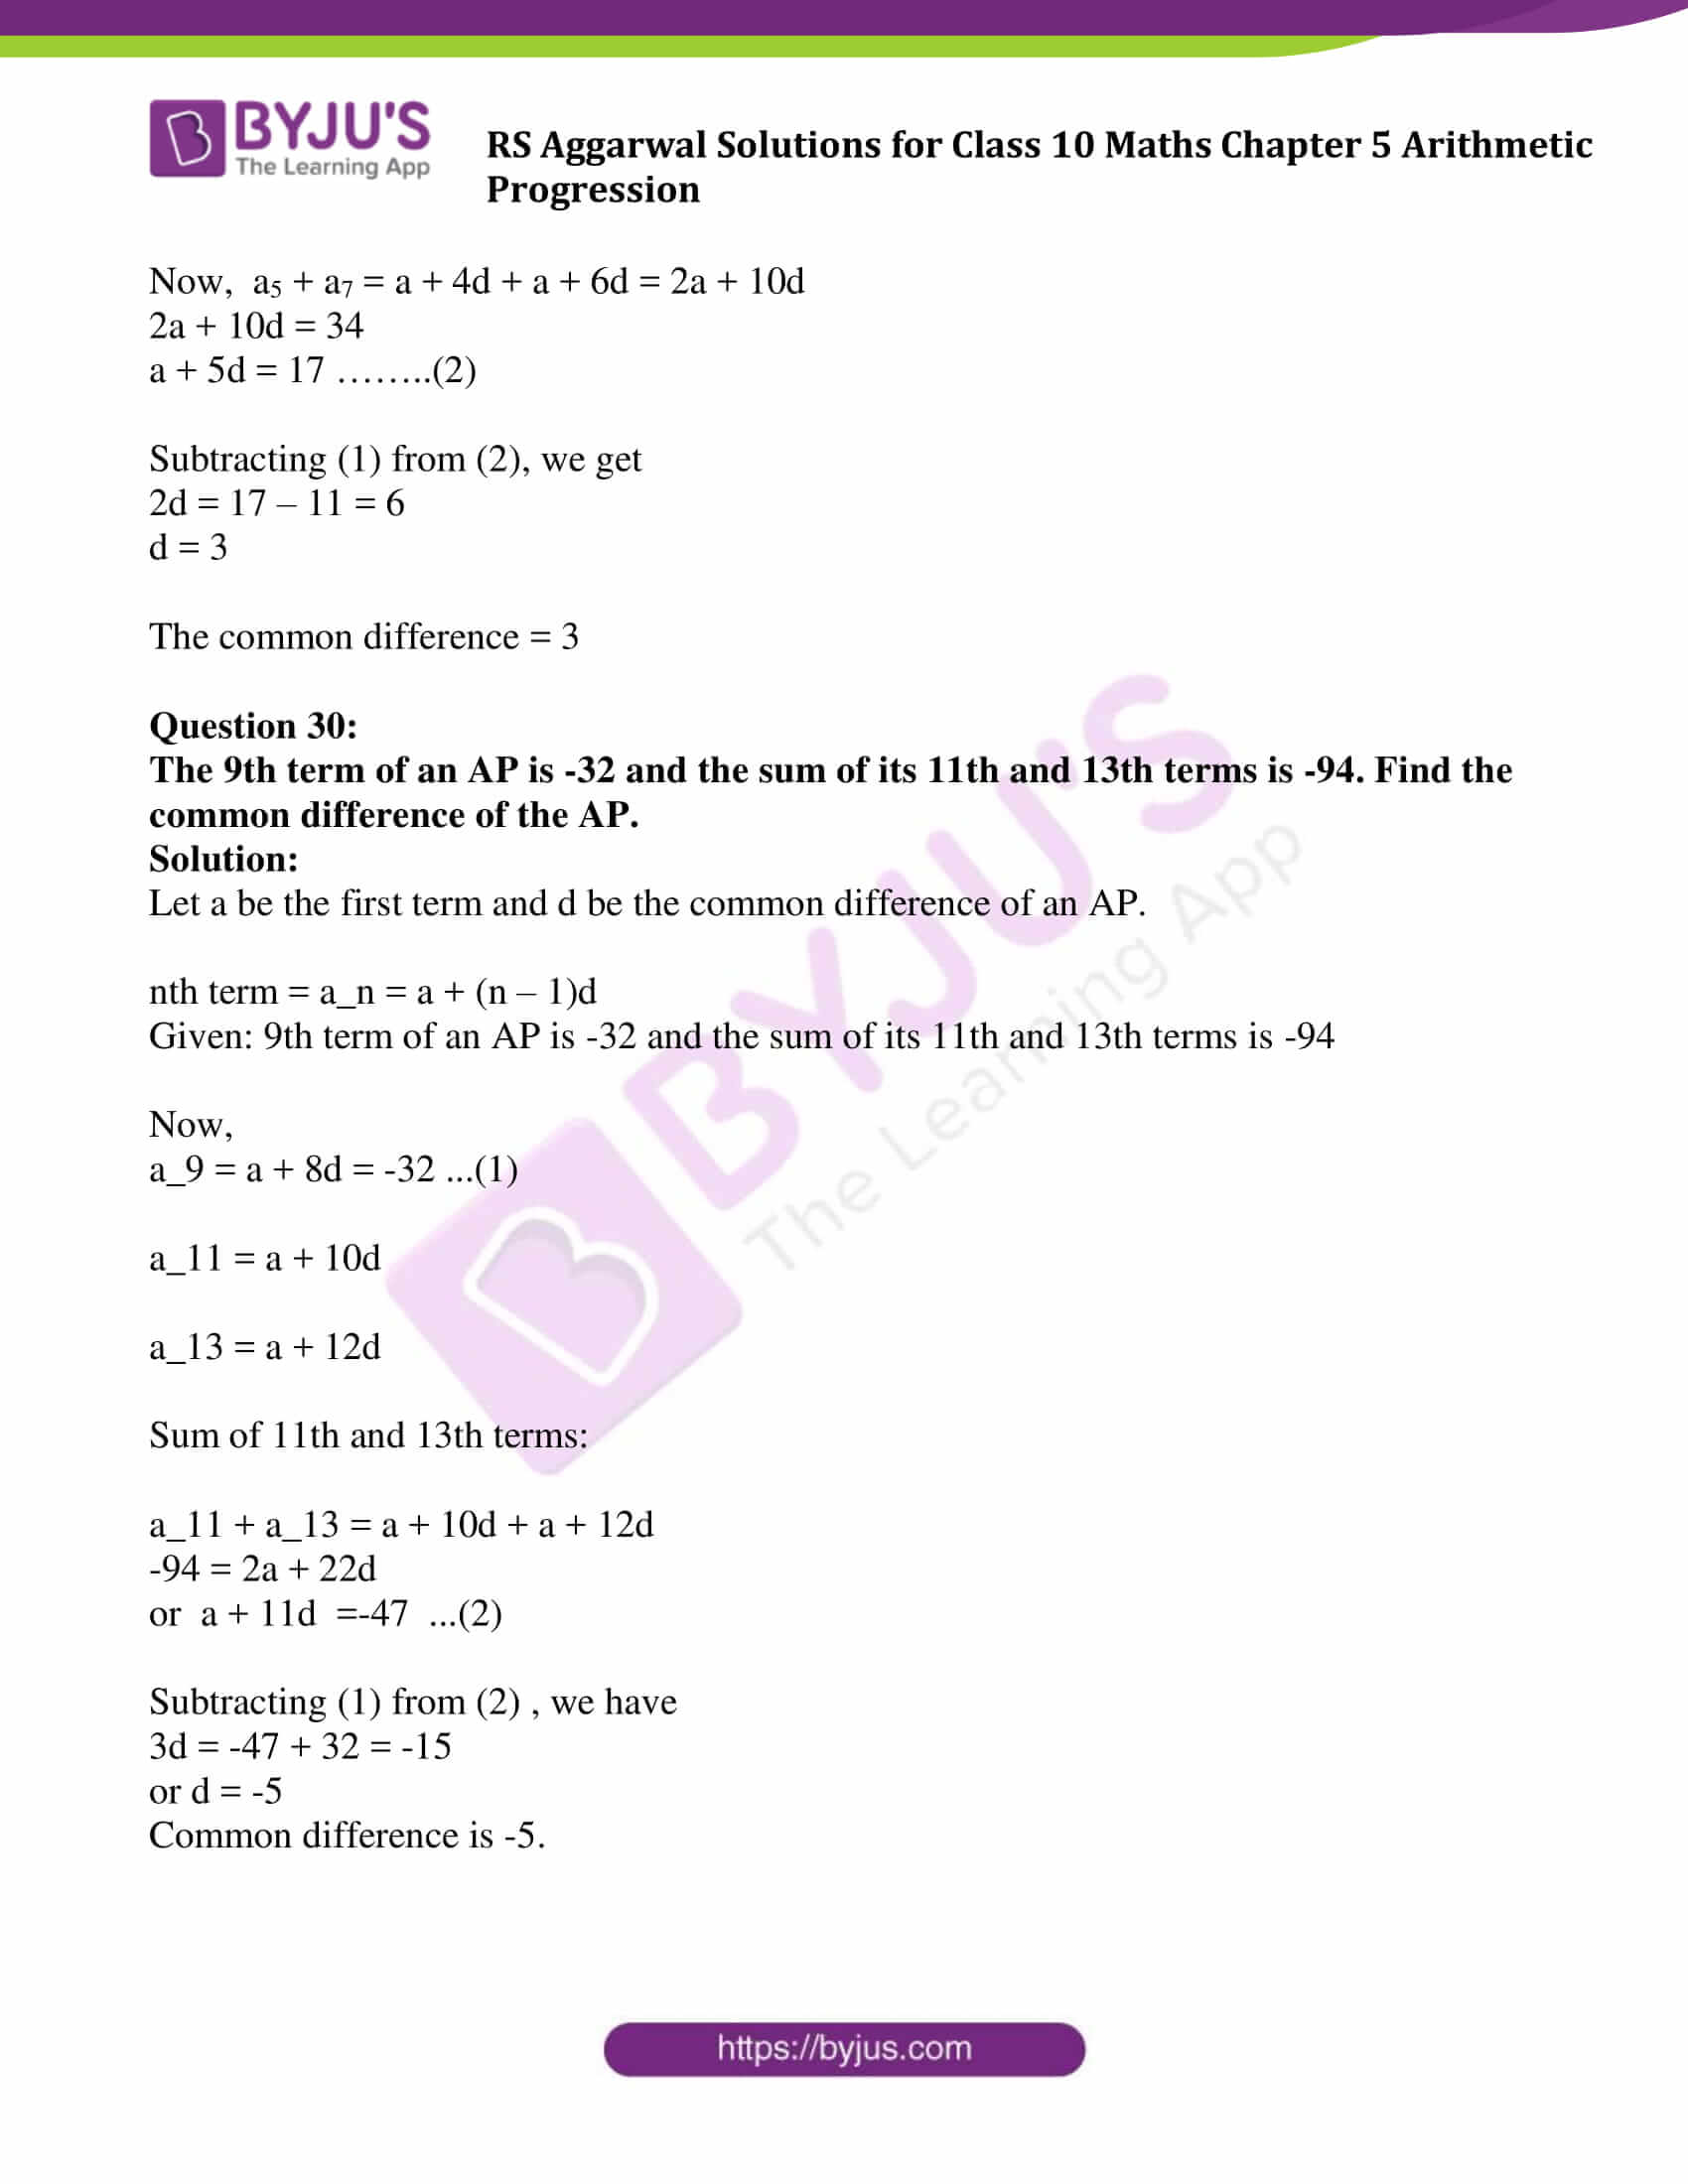 RS Aggarwal Sol class 10 Maths Chapter 5A